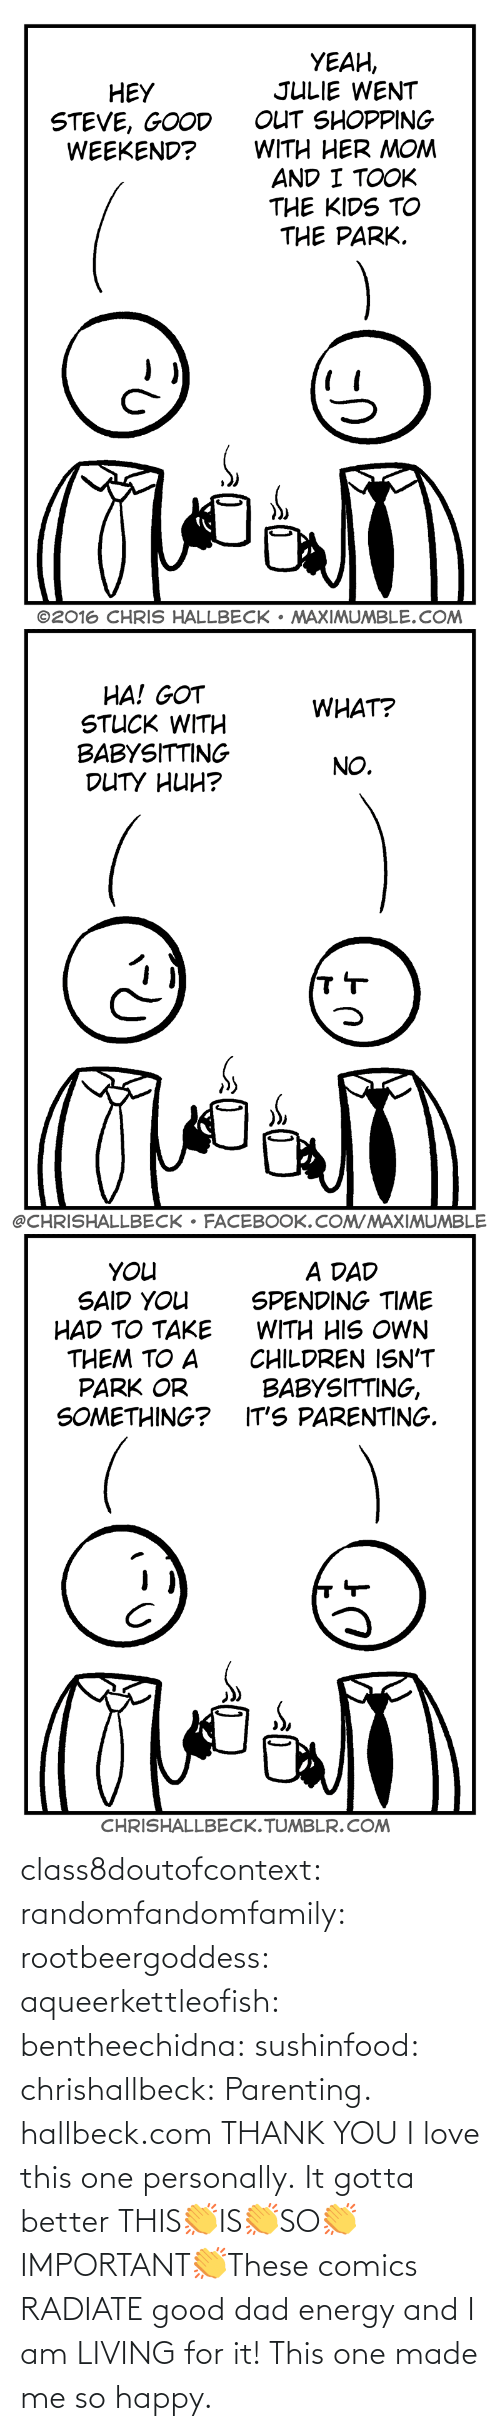 These: class8doutofcontext: randomfandomfamily:  rootbeergoddess:  aqueerkettleofish:  bentheechidna:  sushinfood:  chrishallbeck:  Parenting. hallbeck.com  THANK YOU  I love this one personally.    It gotta better   THIS👏IS👏SO👏IMPORTANT👏These comics RADIATE good dad energy and I am LIVING for it!    This one made me so happy.